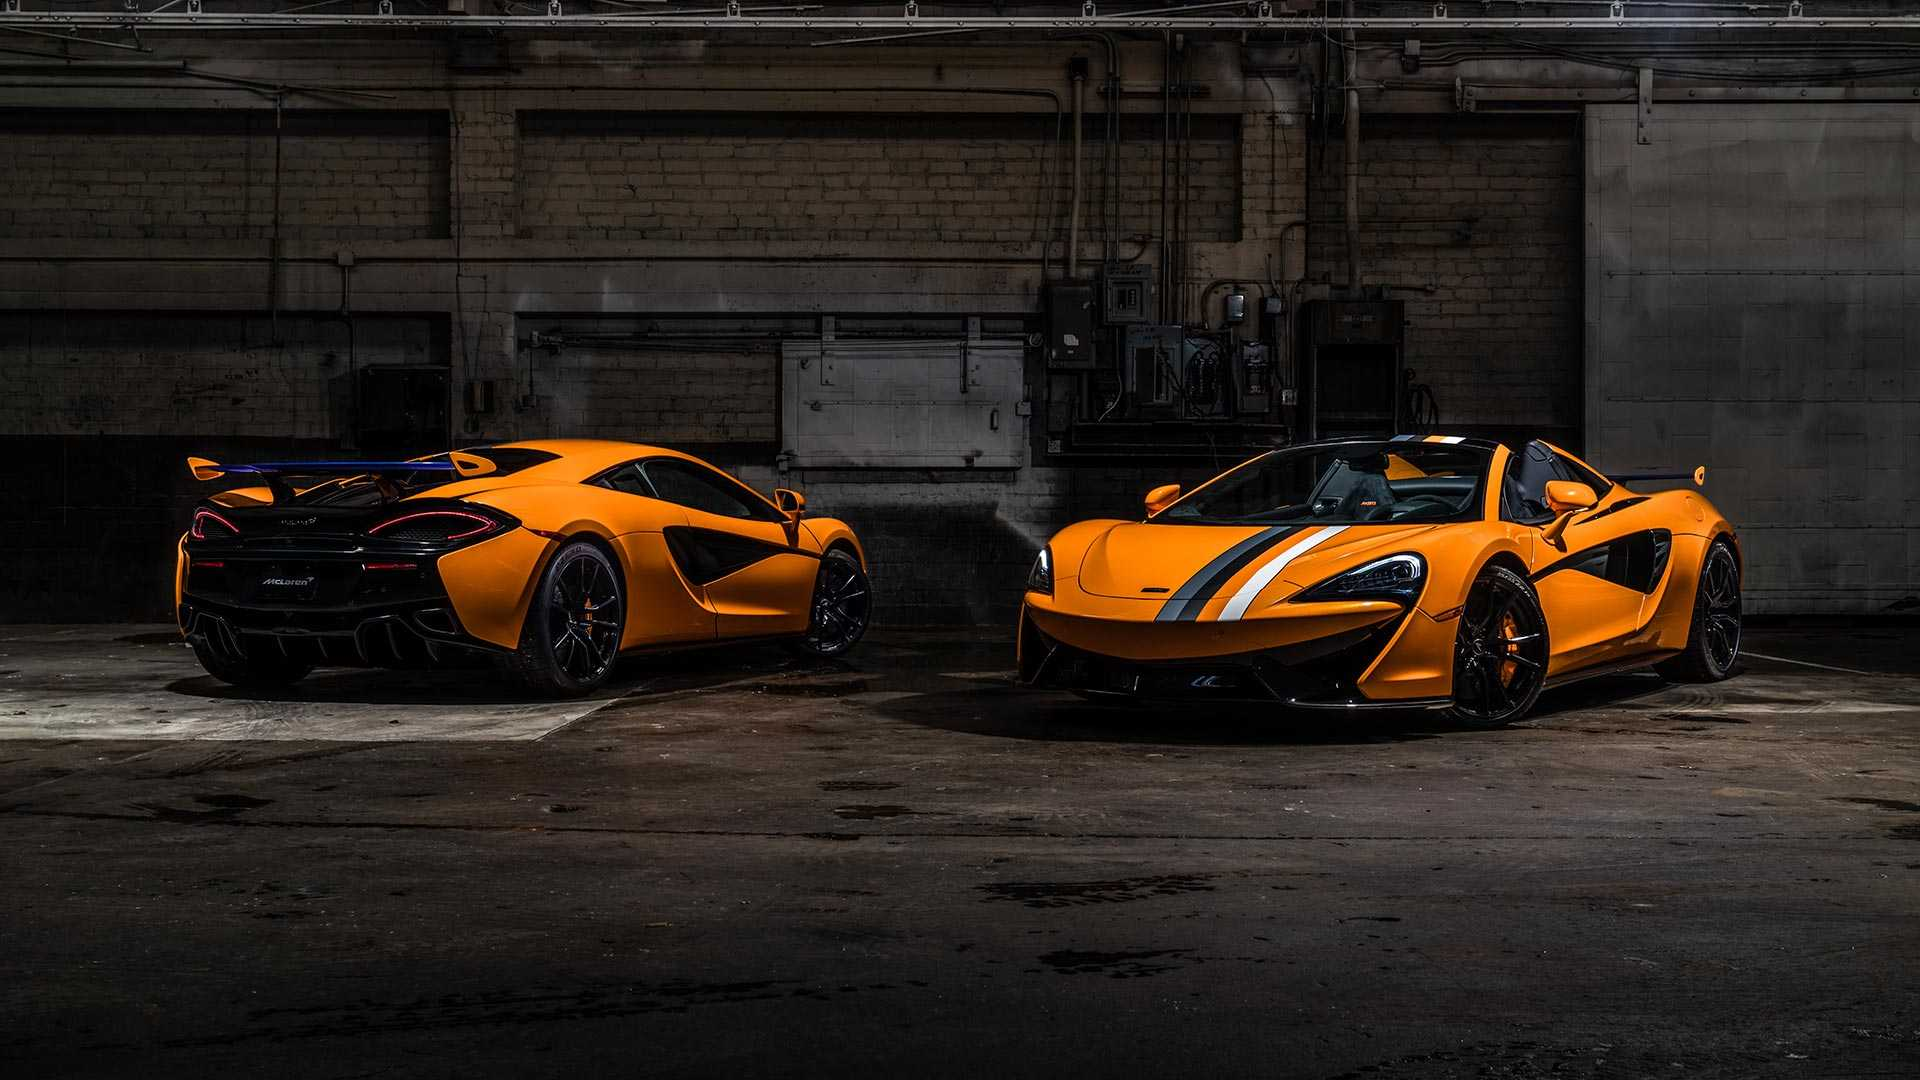 mclaren-570s-papaya-spark-edition